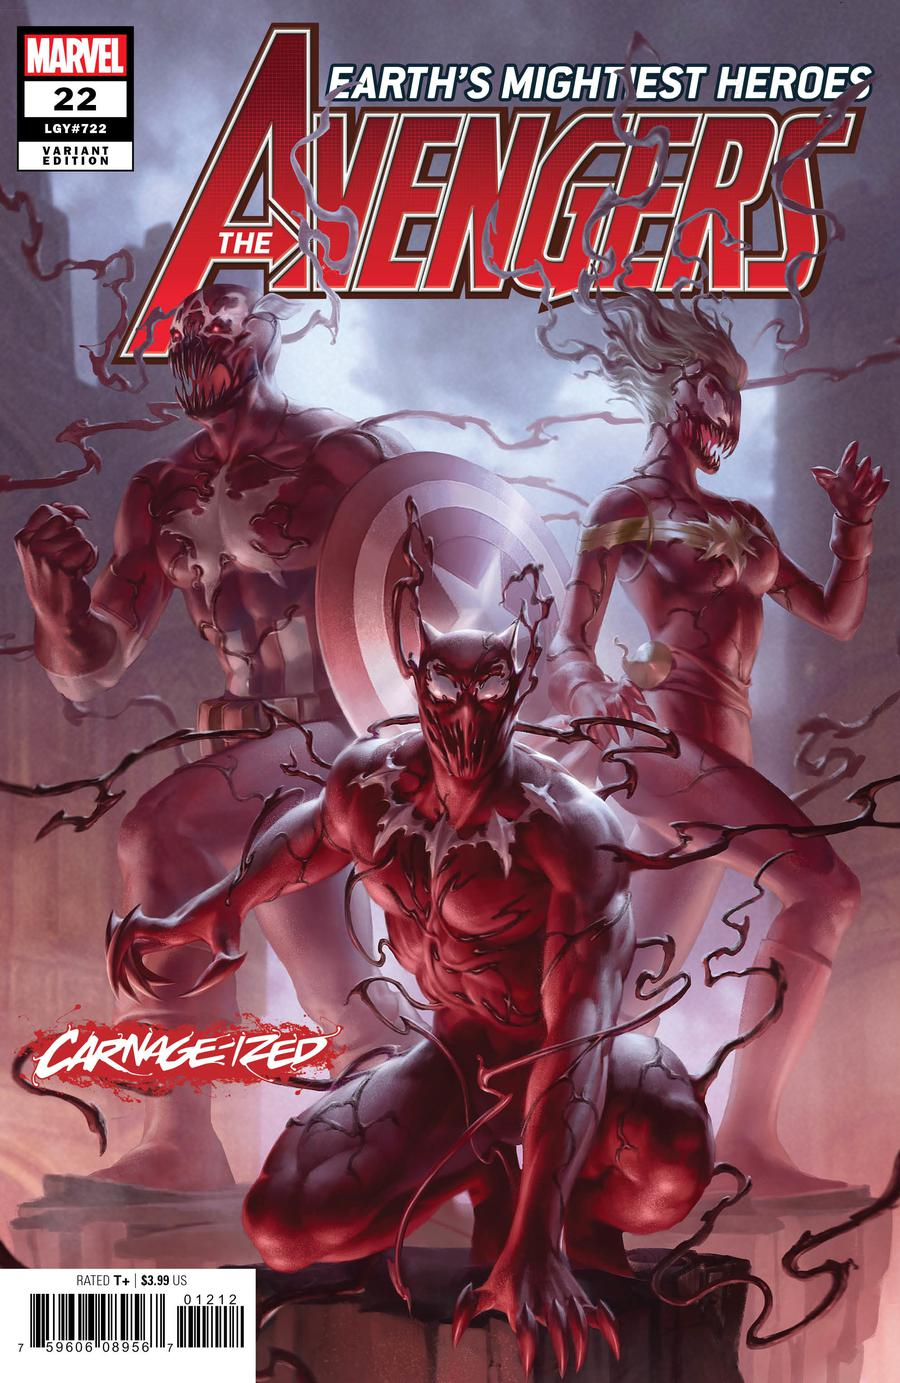 Avengers Vol 7 #22 Cover B Variant Junggeun Yoon Carnage-Ized Cover